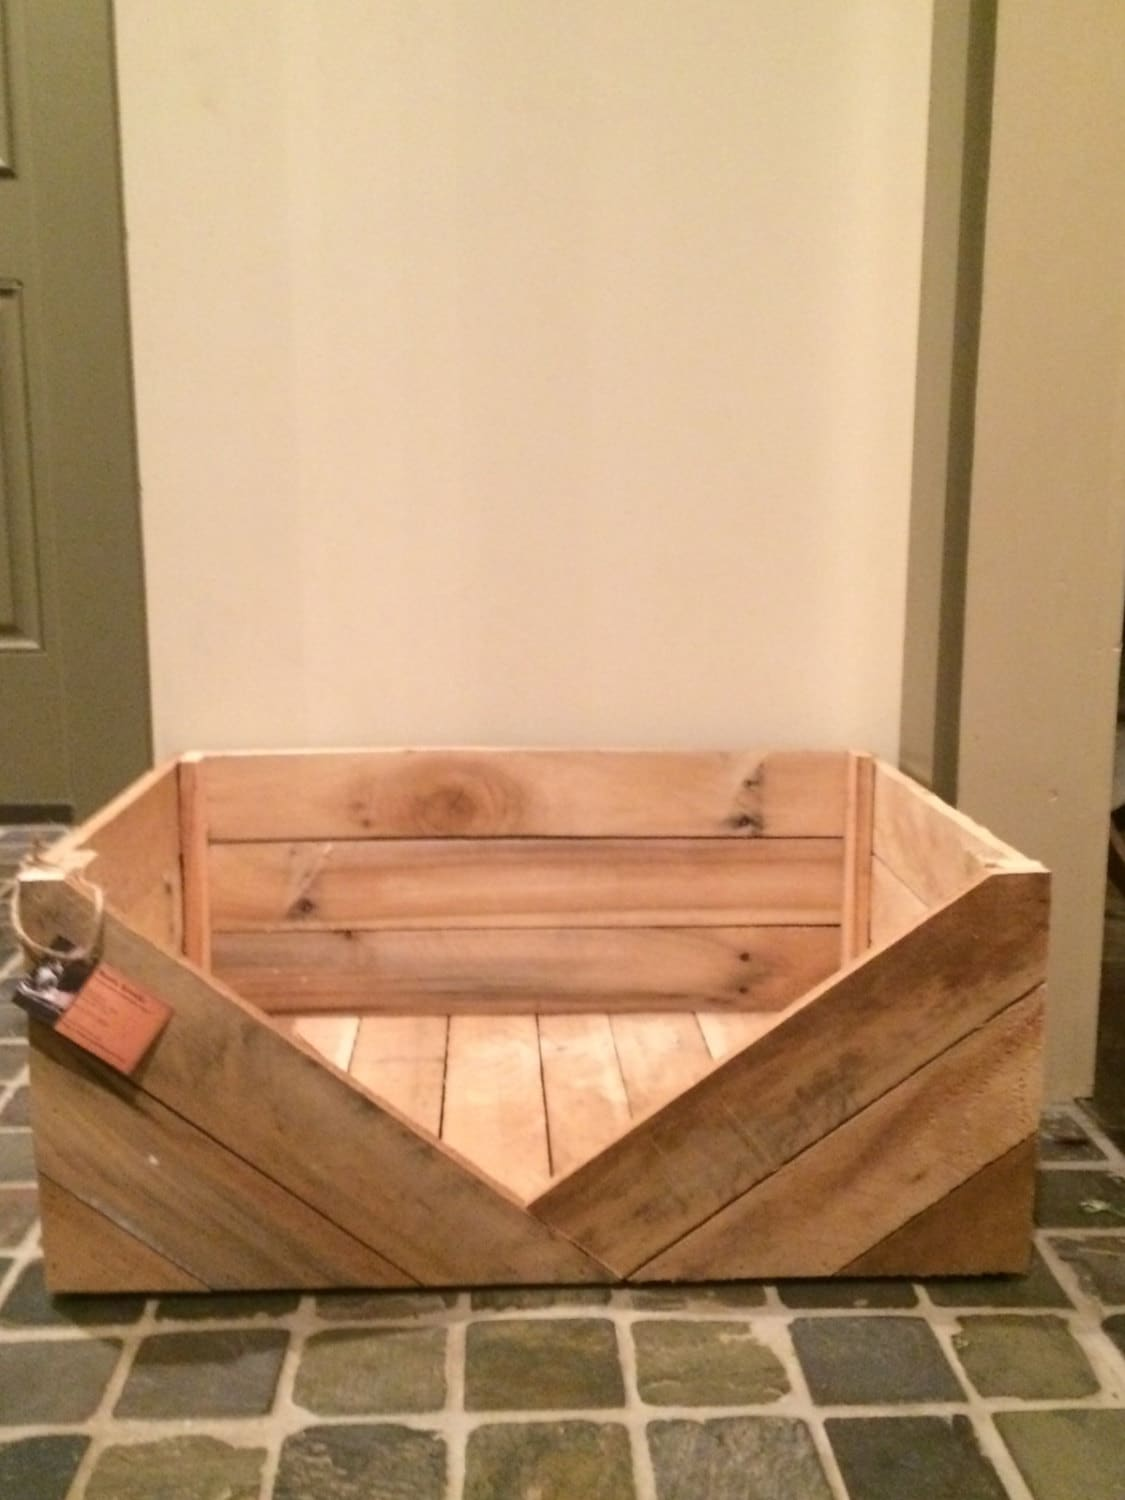 Very Impressive portraiture of Primitive Dog Bed Rustic Dog Bed Reclaimed Wooden by RusticKnacks with #A66925 color and 1125x1500 pixels